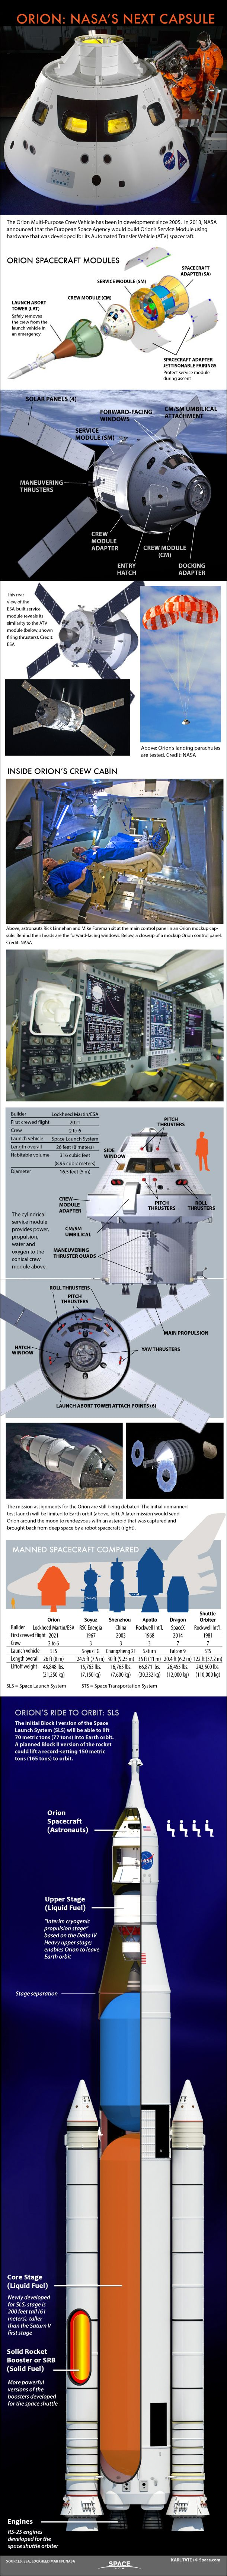 """ORION Explained"""" NASA's Multi-Purpose Crew Vehicle- Details of the Orion four-person capsule that could carry crews to the Moon or an asteroid, beginning in 2021."""